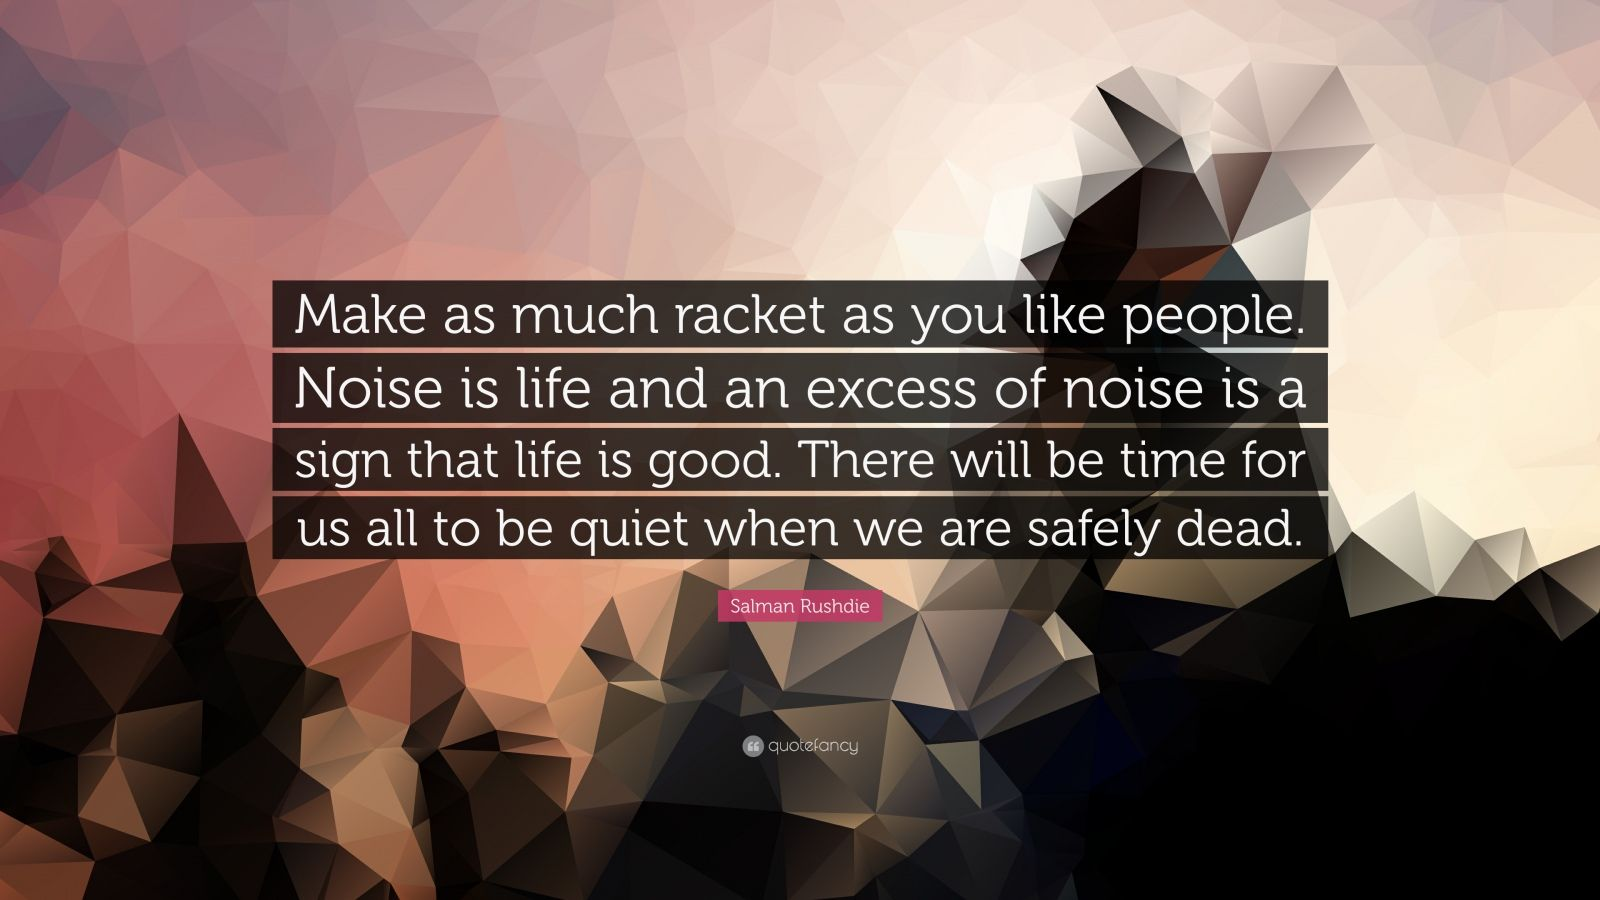 """Salman Rushdie Quote: """"Make as much racket as you like people. Noise is life and an excess of noise is a sign that life is good. There will be time for us all to be quiet when we are safely dead."""""""